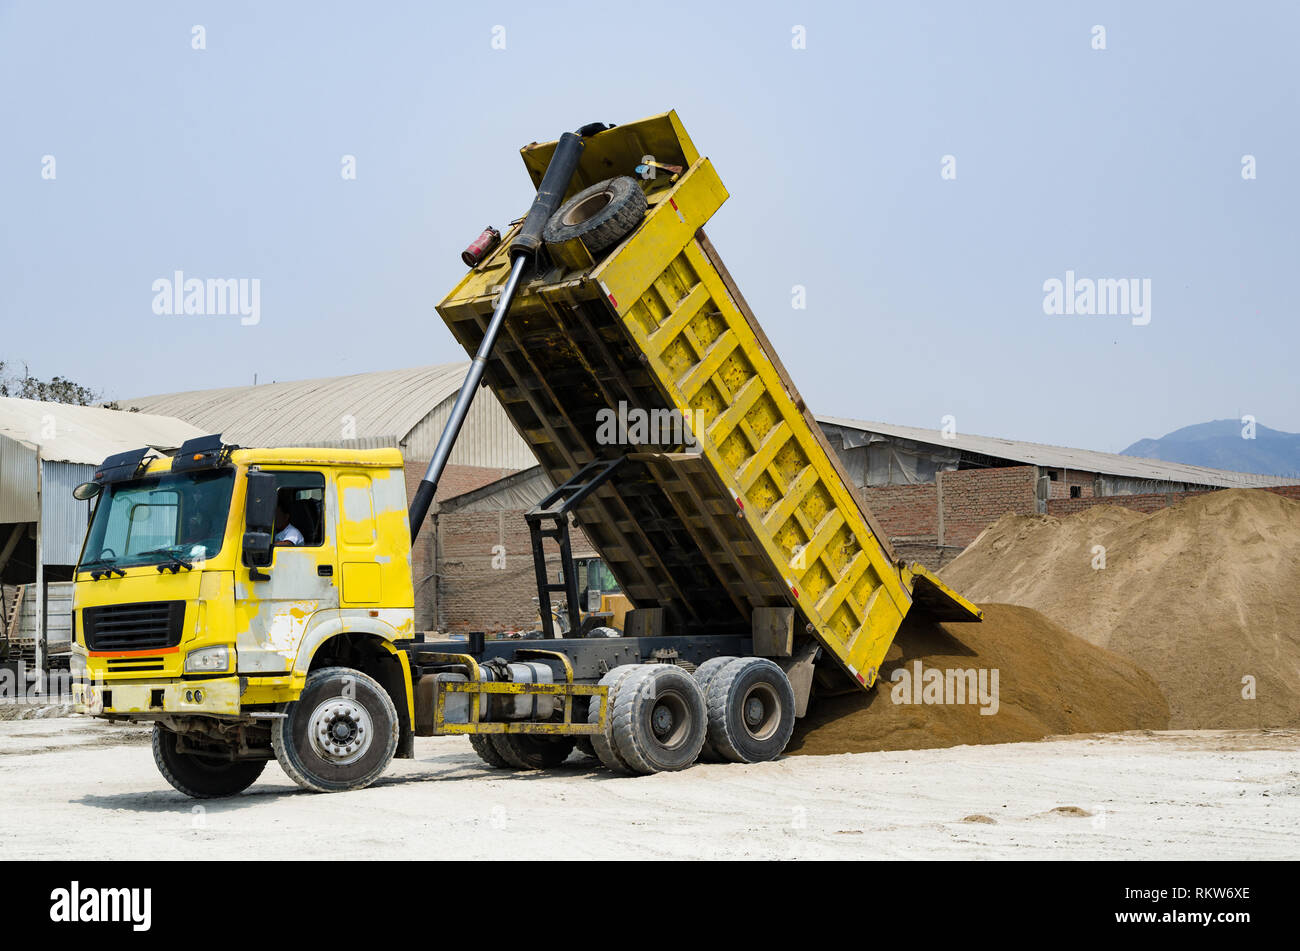 Ten yard dump truck delivering a load of dirt for a fill project at a new commercial development construction project - Stock Image